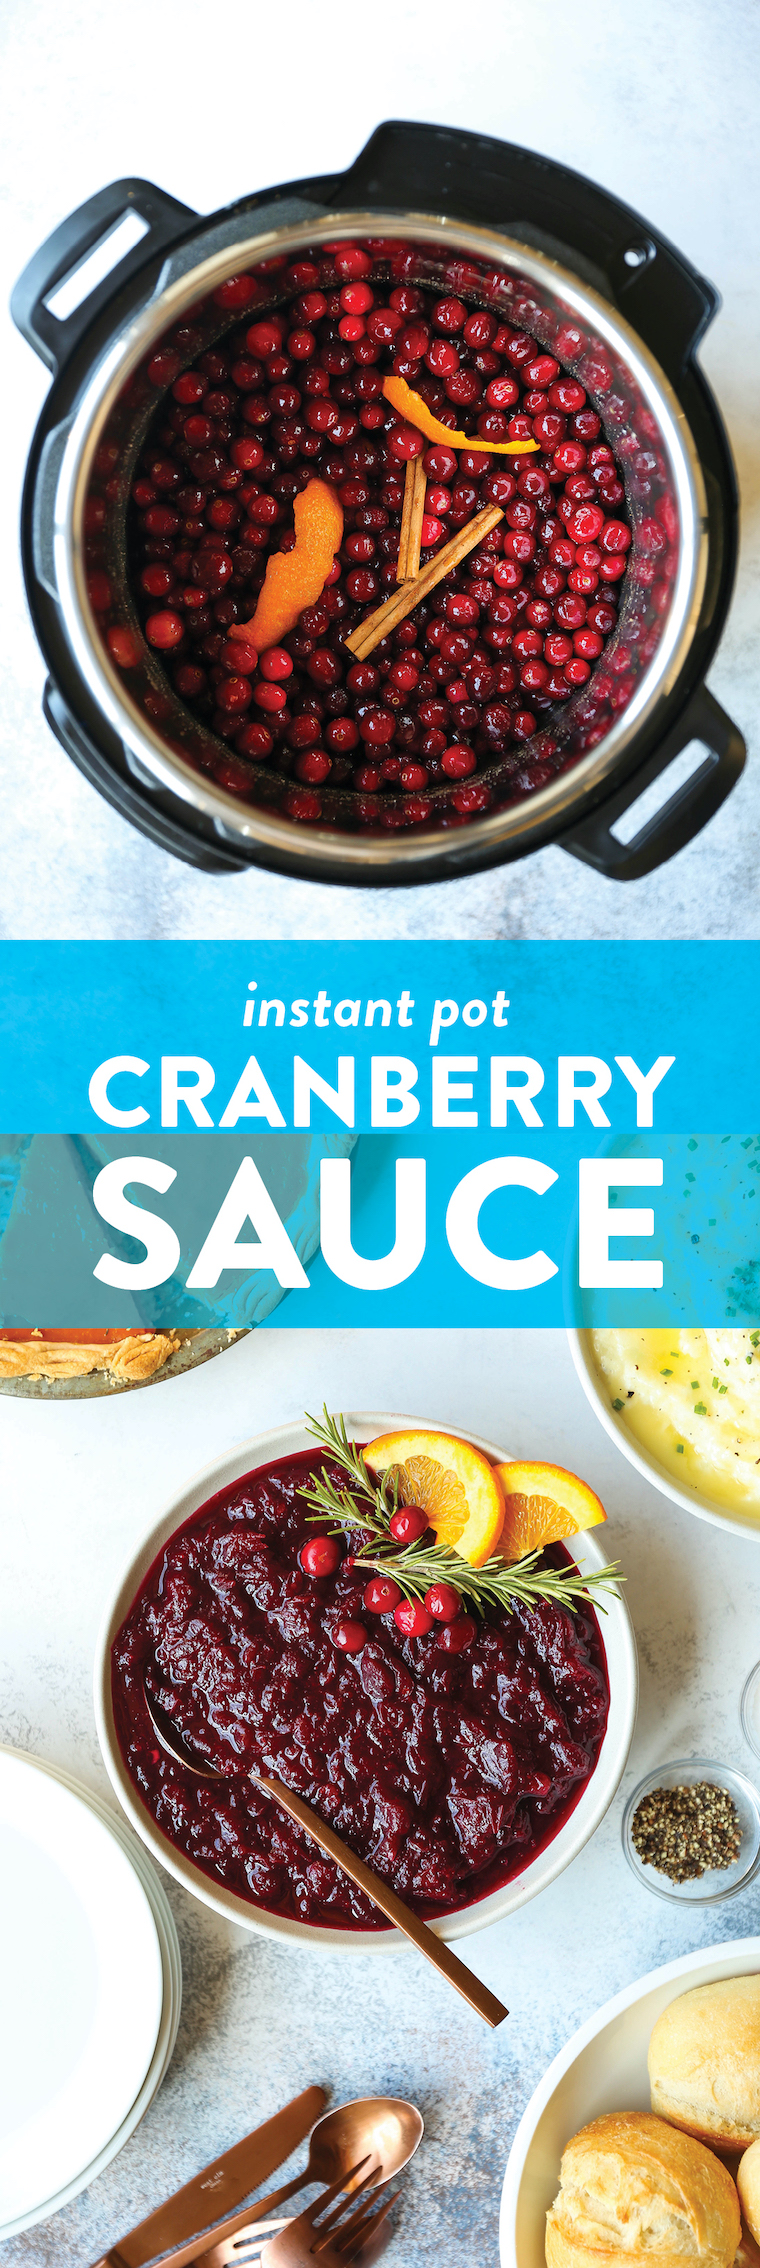 Instant Pot Cranberry Sauce - Perfect homemade 4 min cranberry sauce made from scratch! Use frozen or fresh cranberries. Quick, simple, easy, and so good.